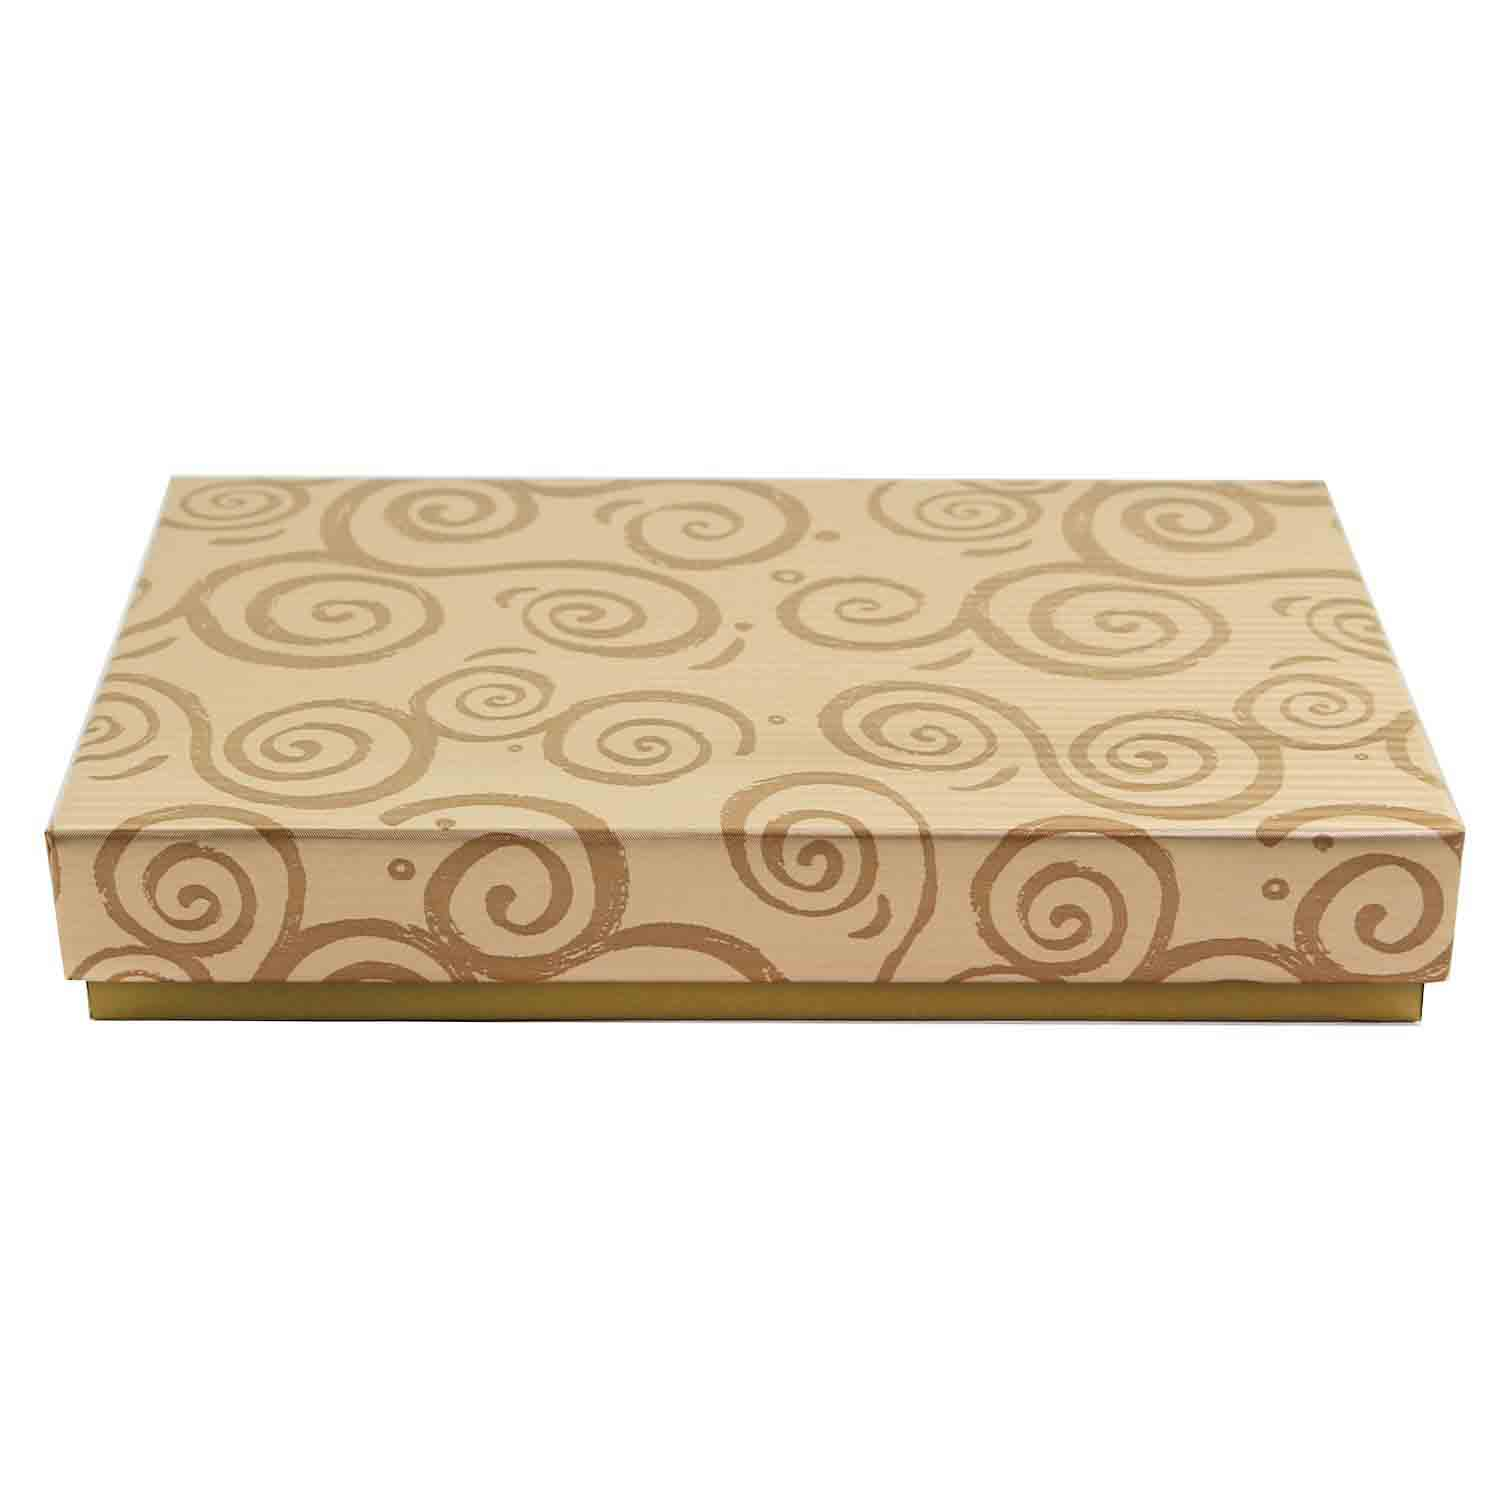 1/2 lb. Gold Swirl Candy Box